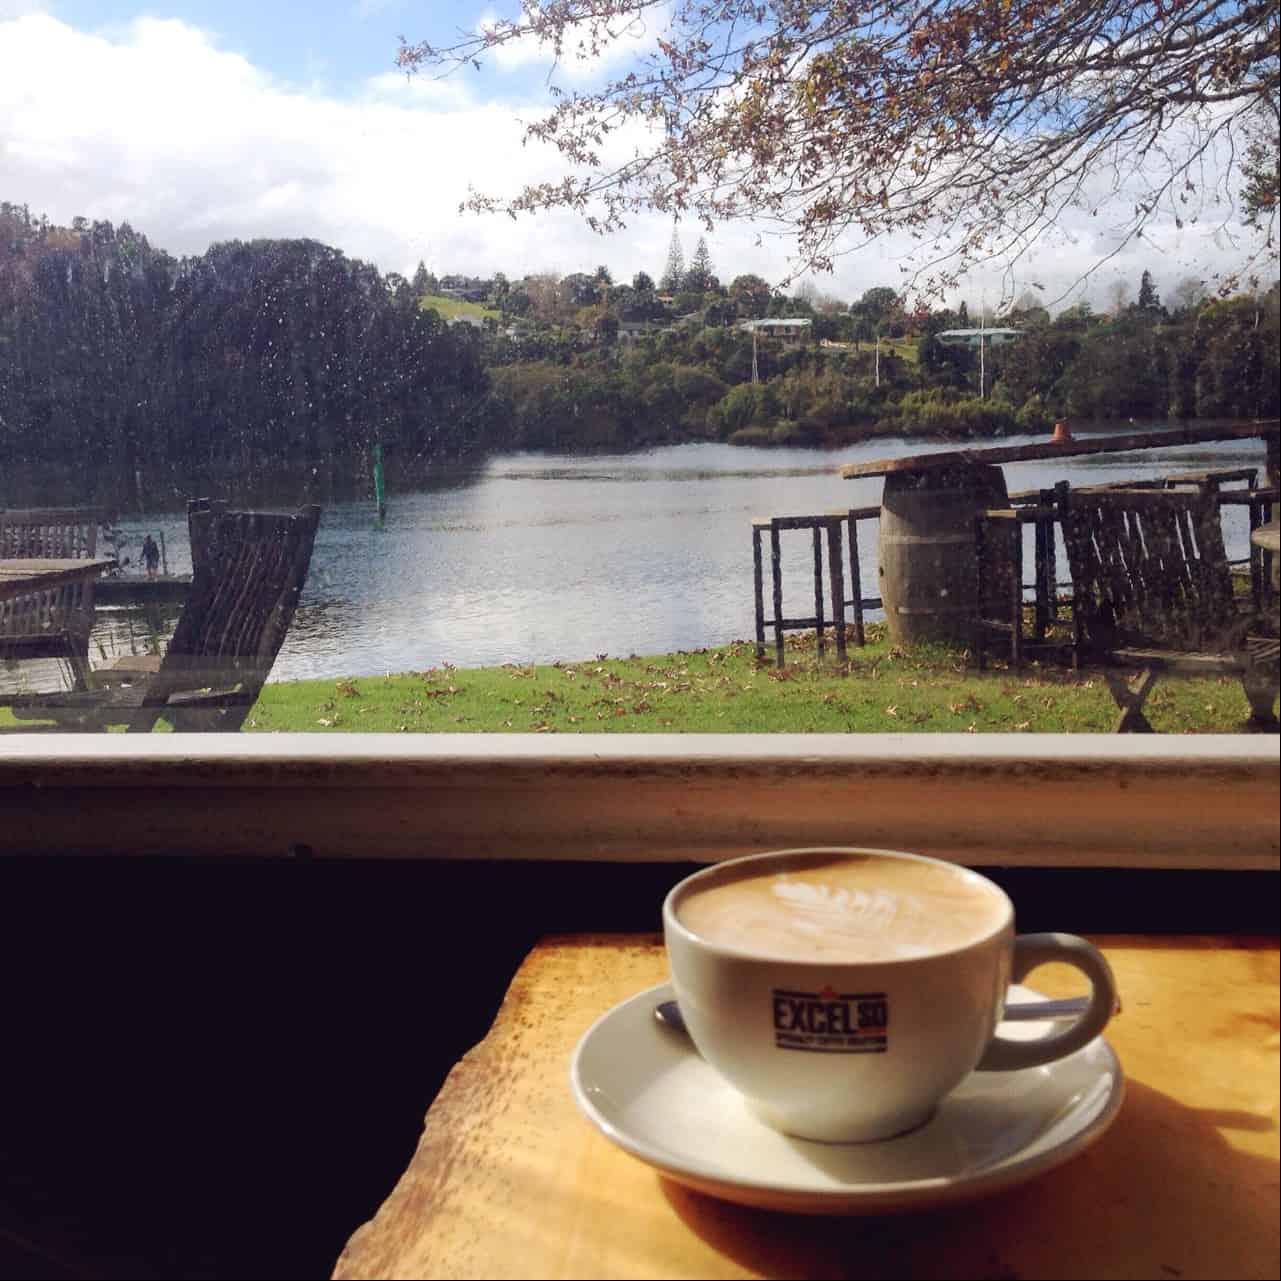 I love the stunning view from The Pear Tree, overlooking the Kerikeri Inlet.